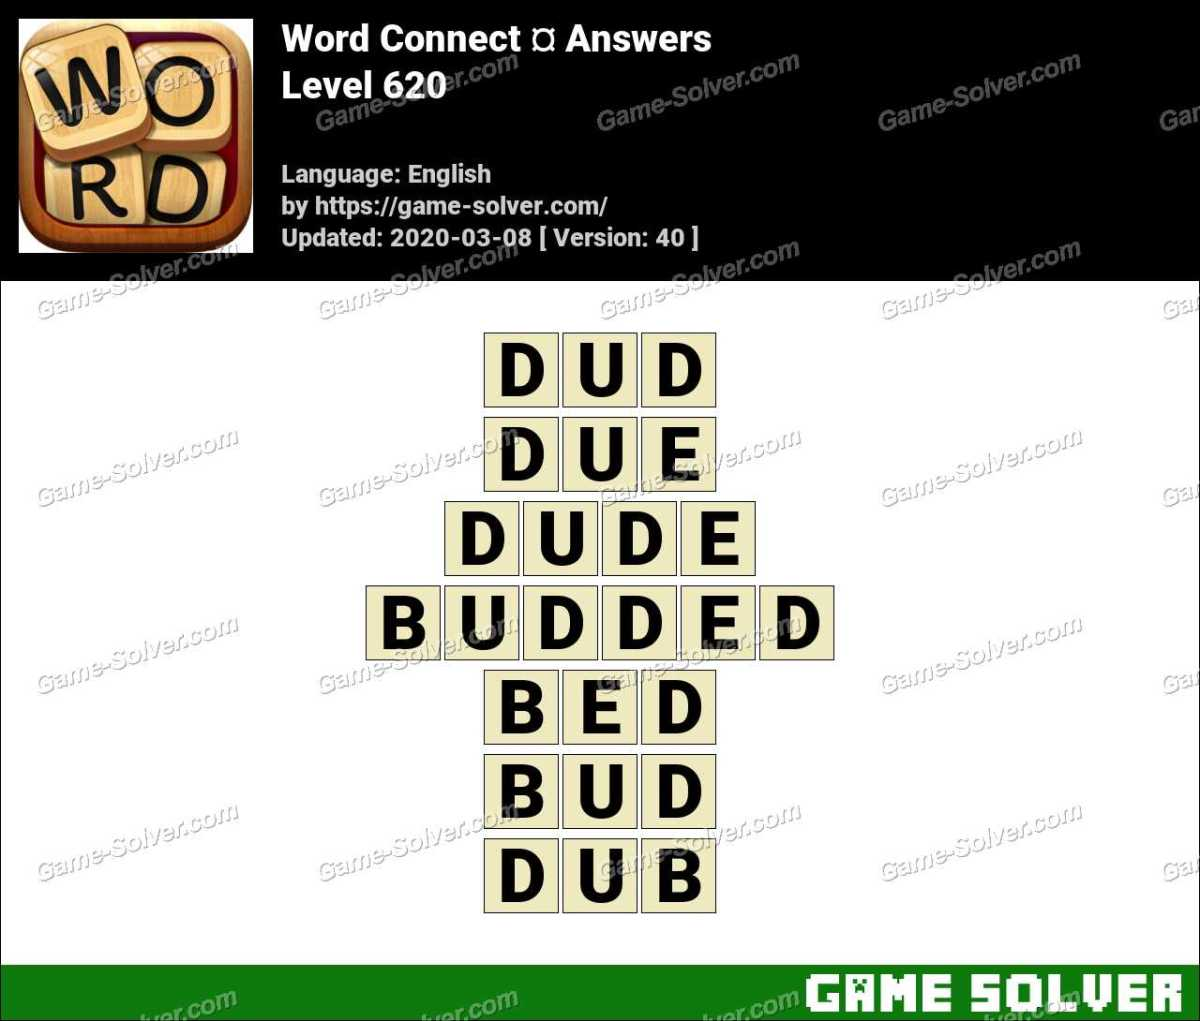 Word Connect Level 620 Answers